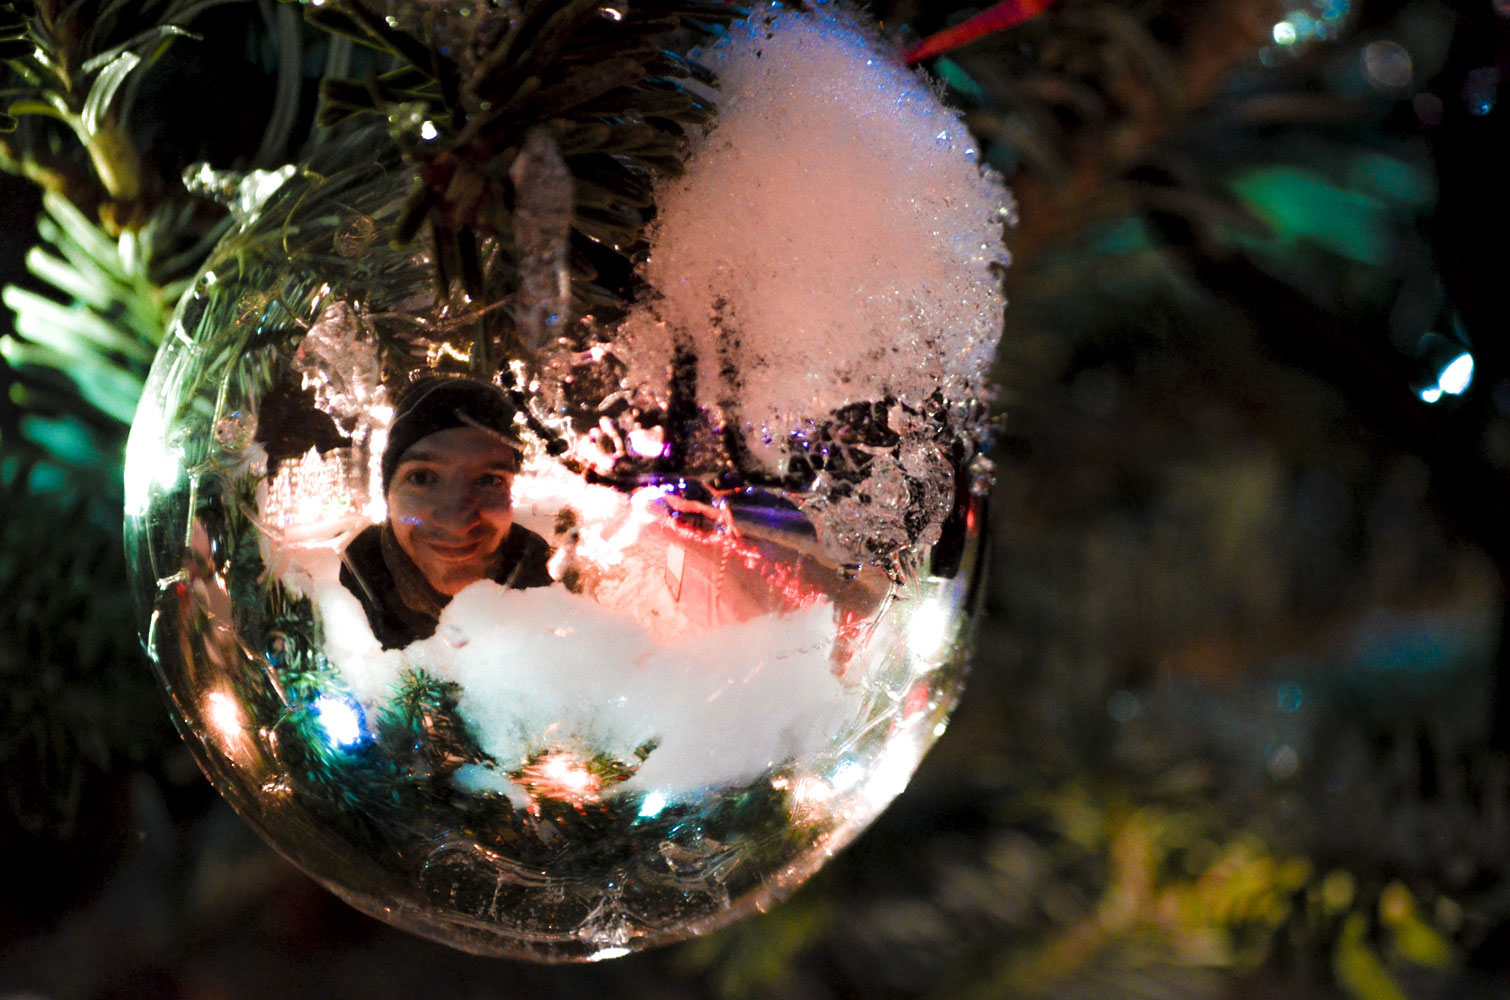 La-Crosse-Rotory-Lights-Ornaments-Self-Portrait